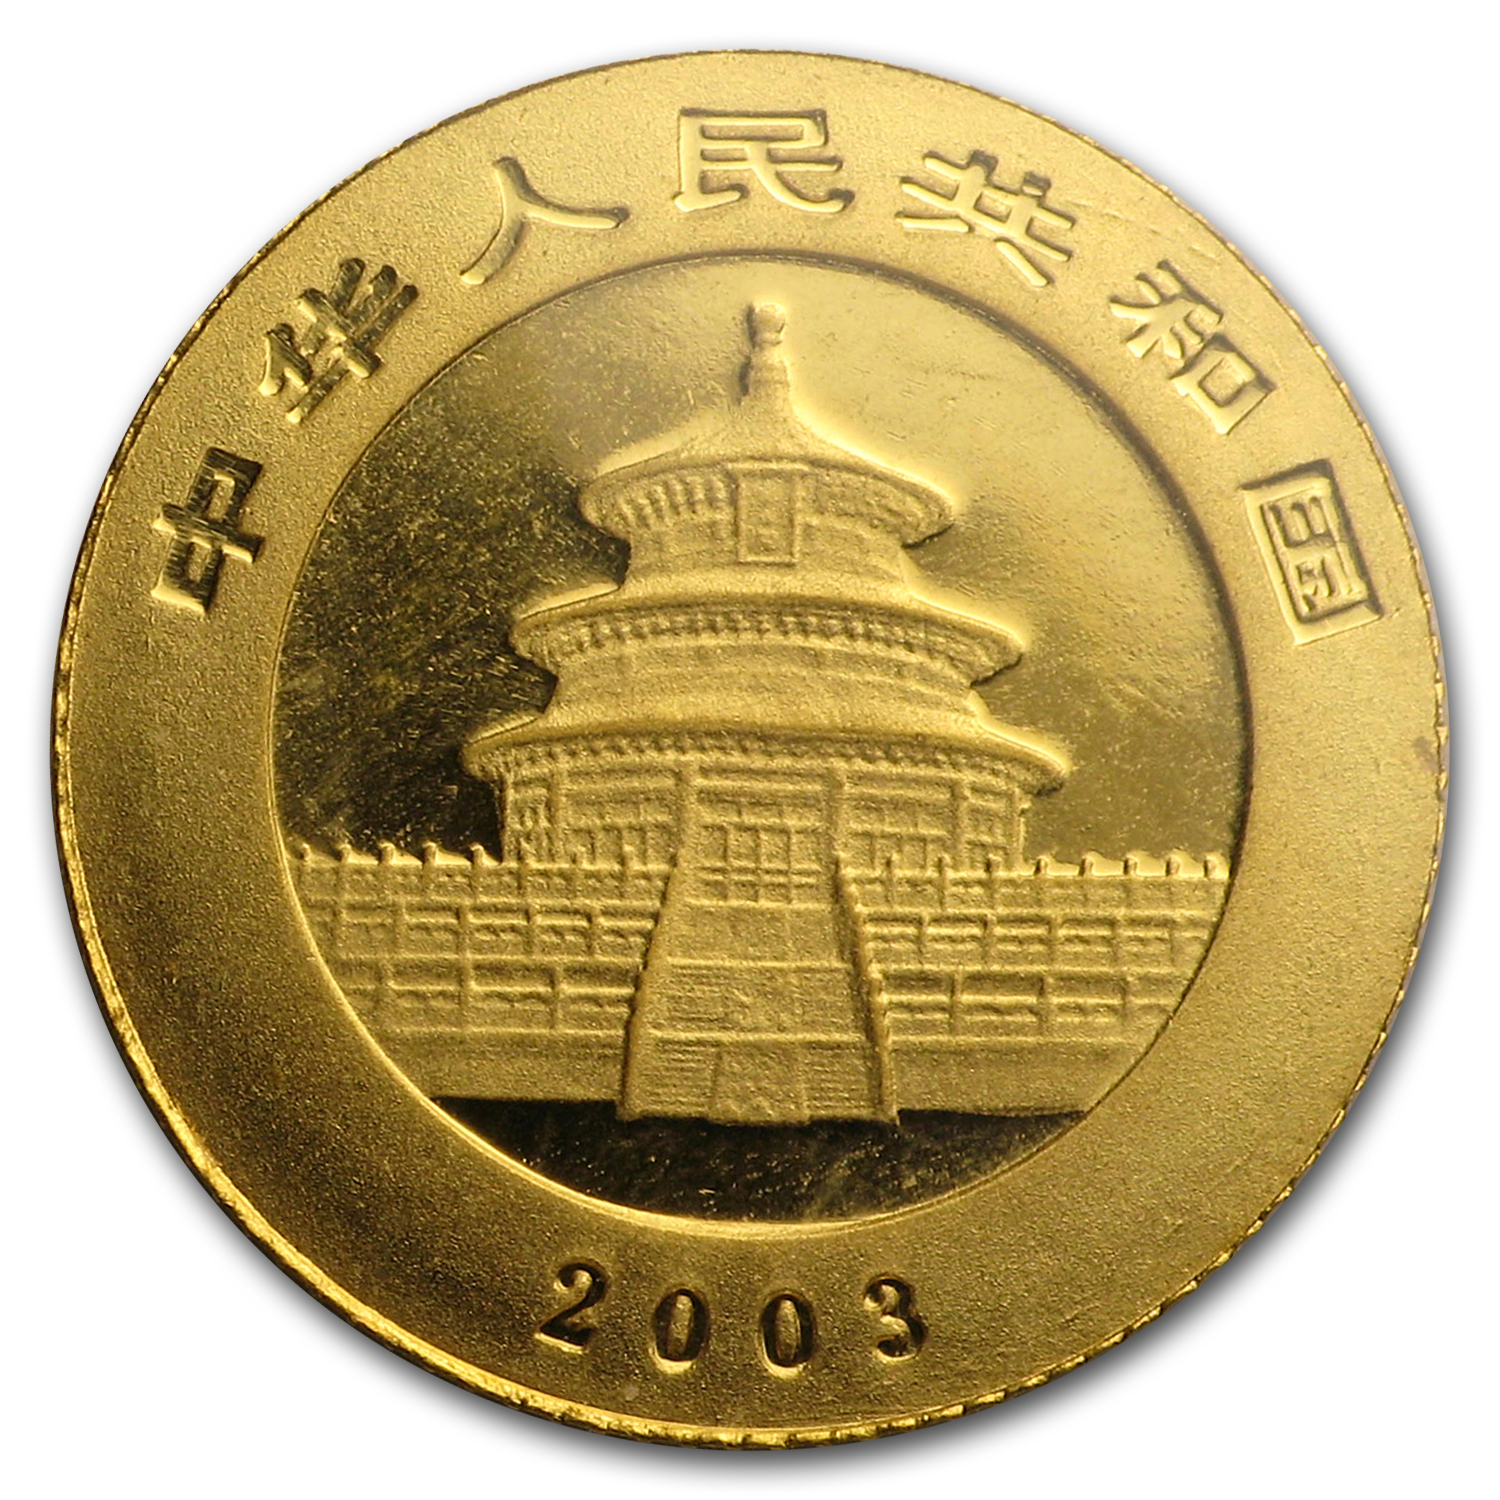 2003 China 1/20 oz Gold Panda BU (Sealed)